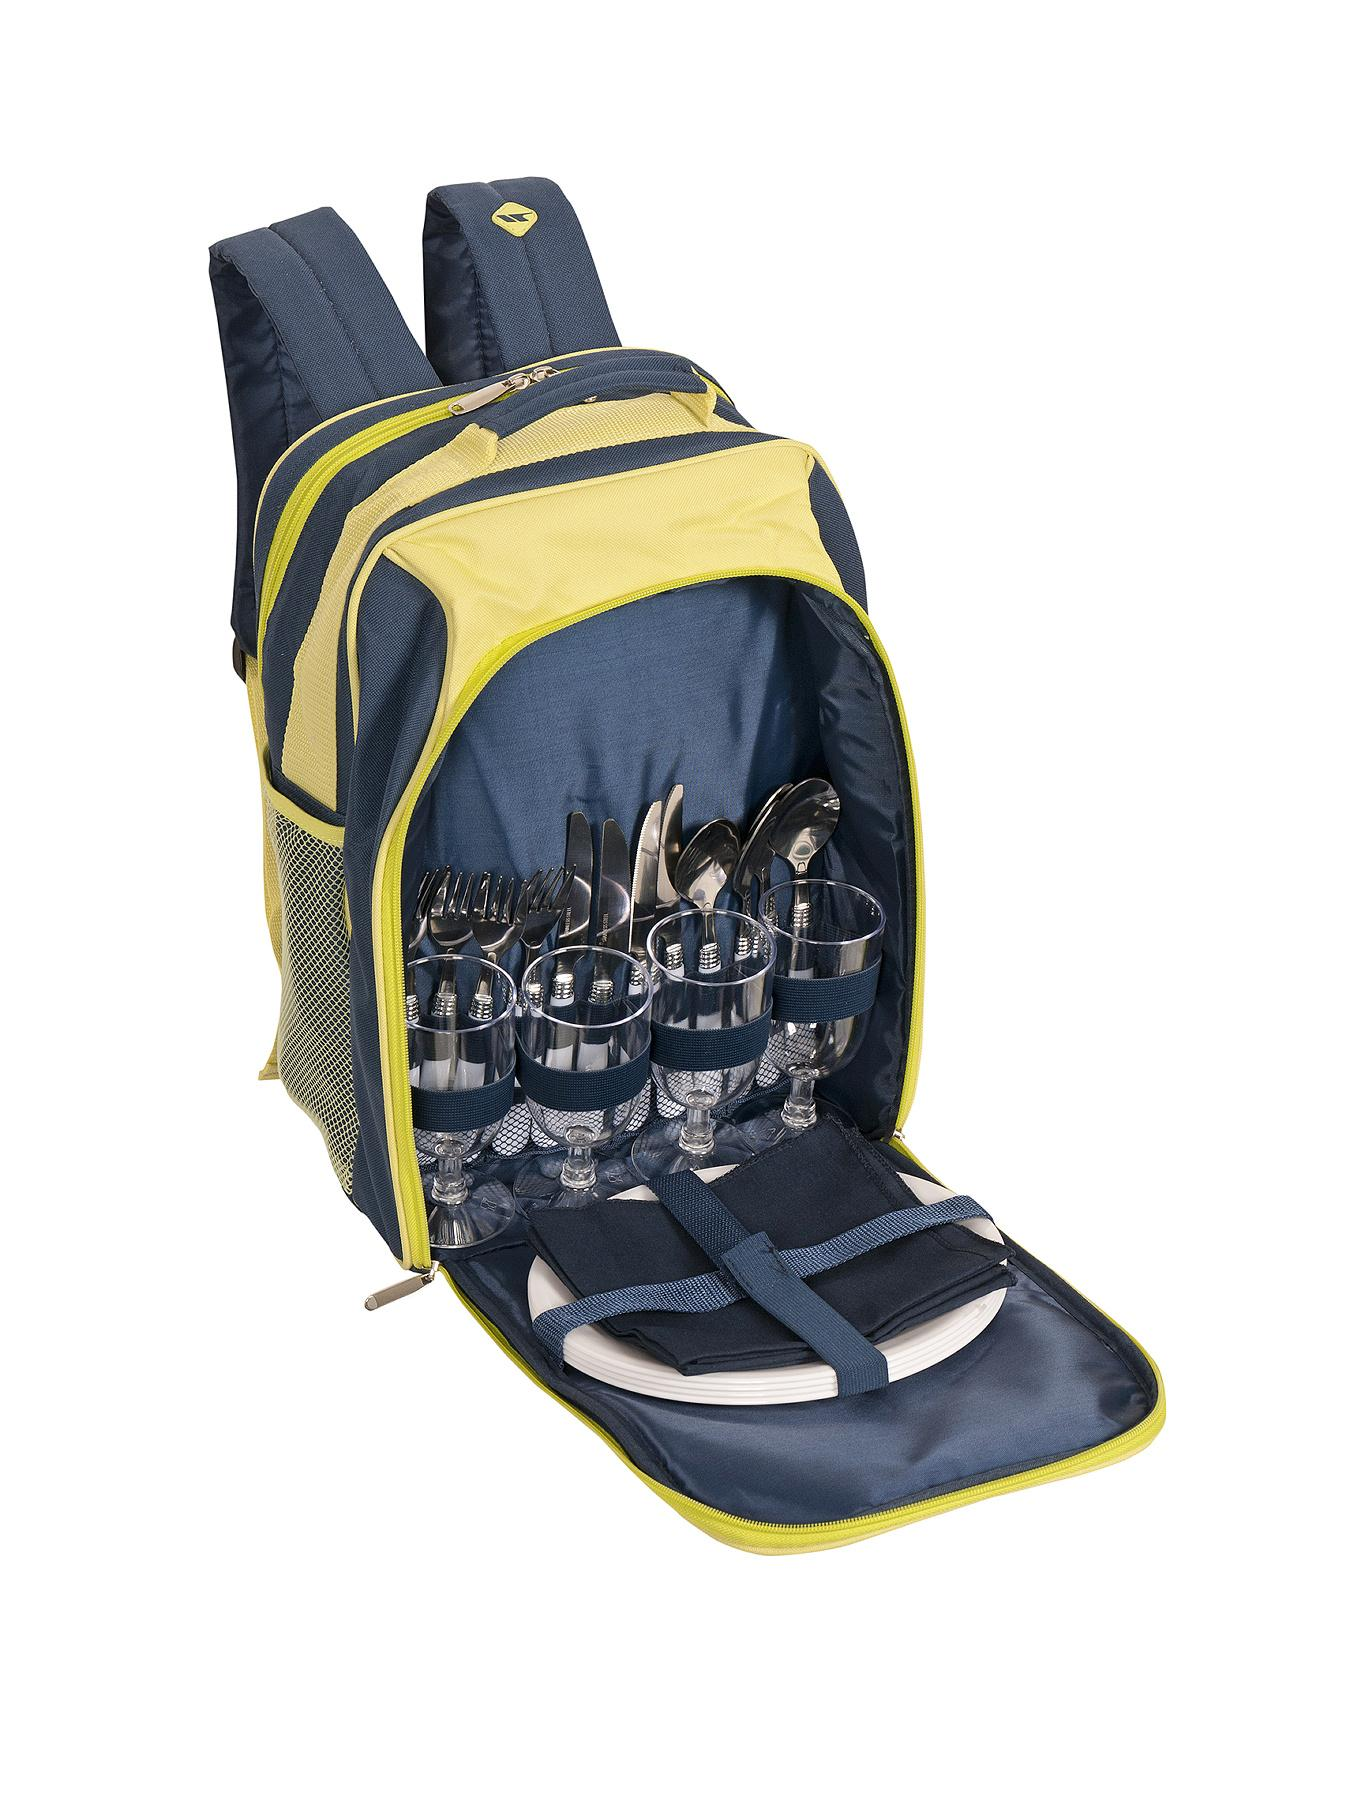 Trespass Nicpic 4-Person Picnic Rucksack